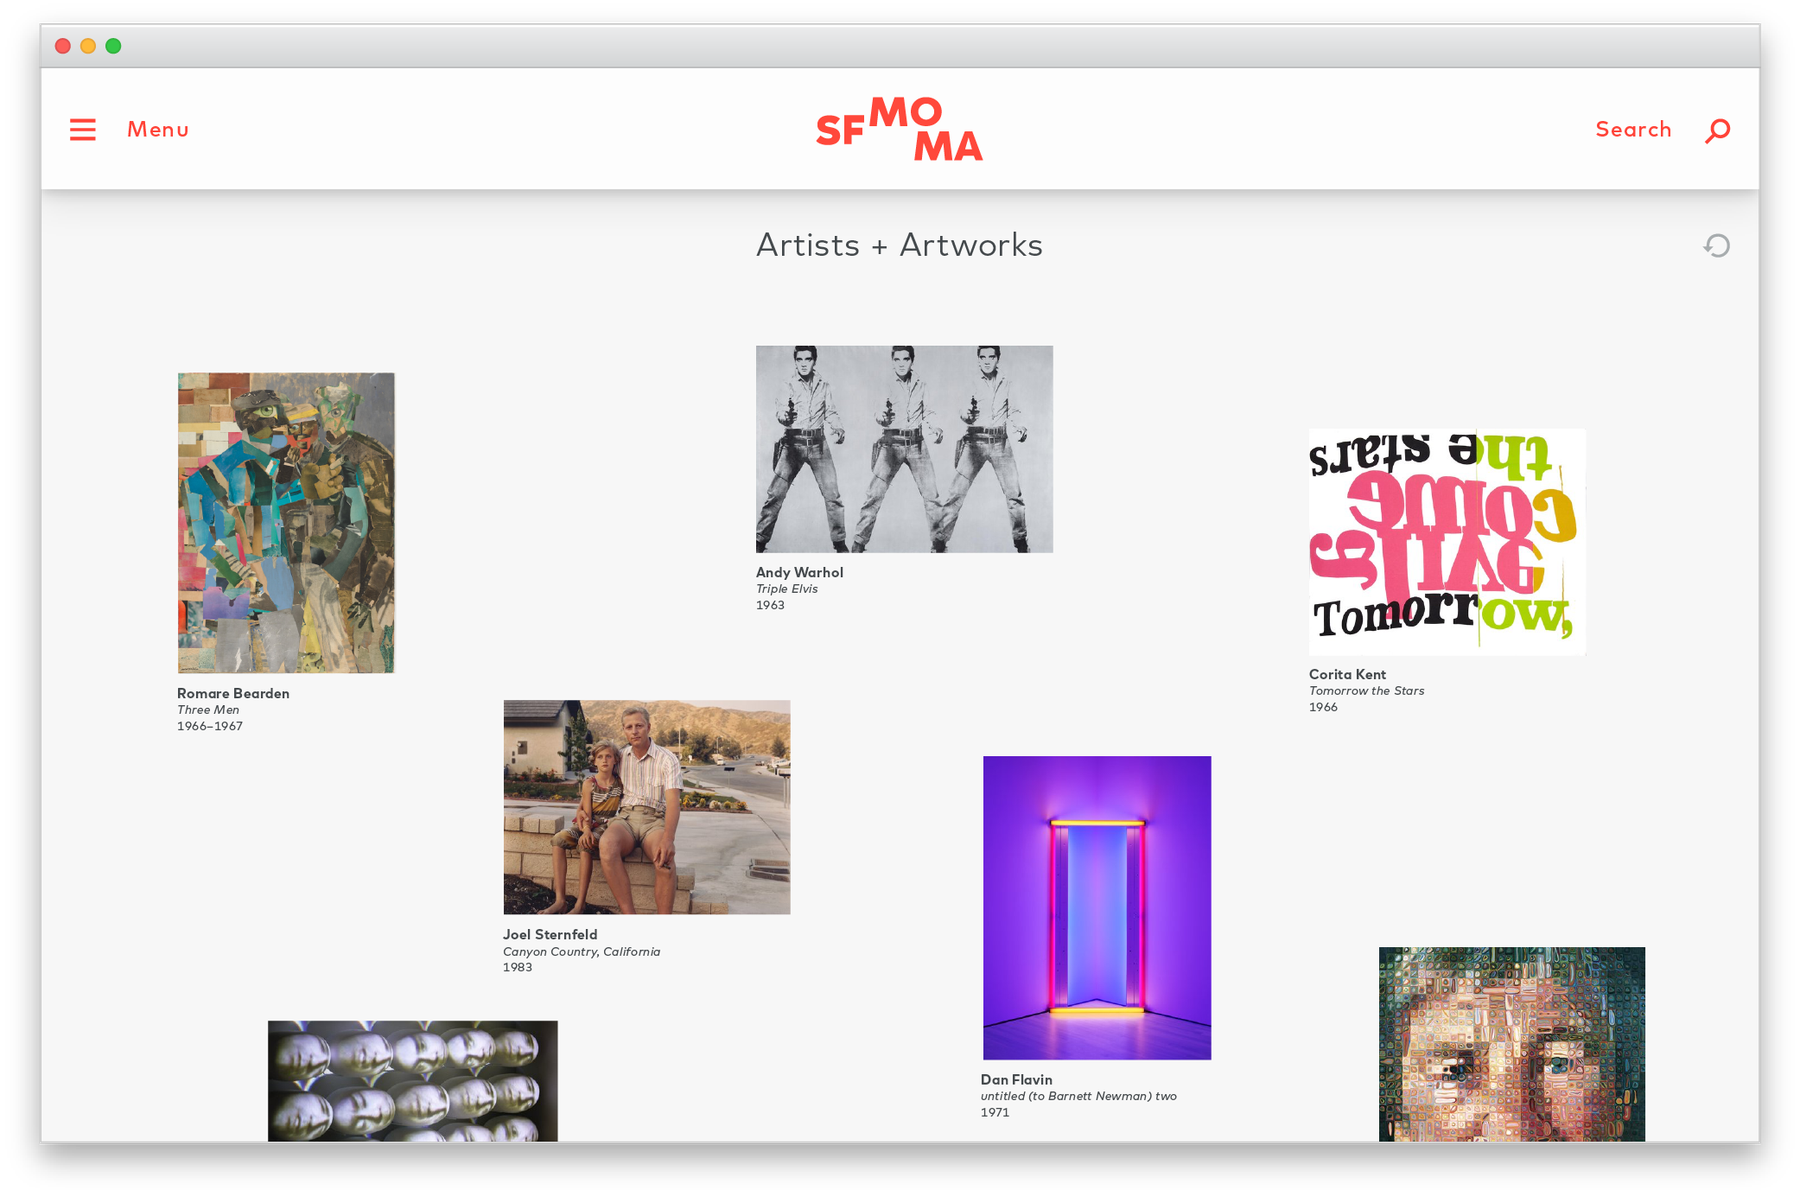 SFMOMA artist and artworks page